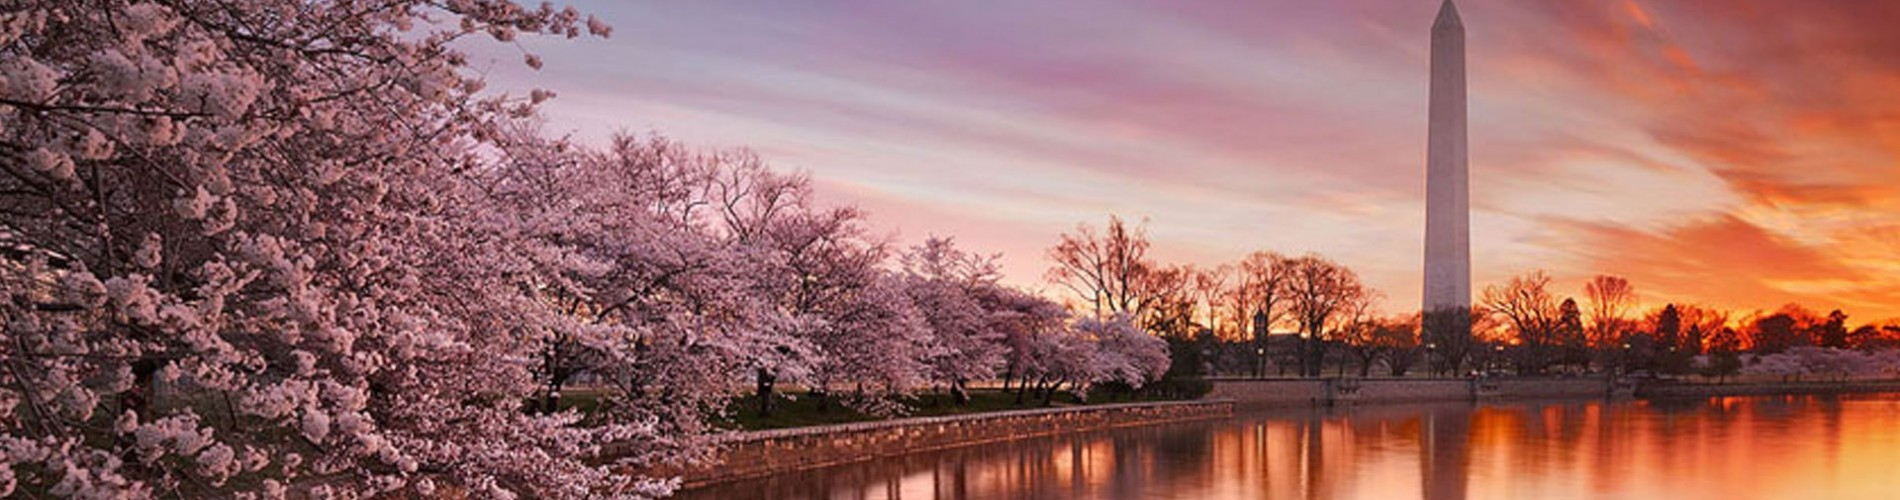 DC Tidal Basin with cherry blossoms